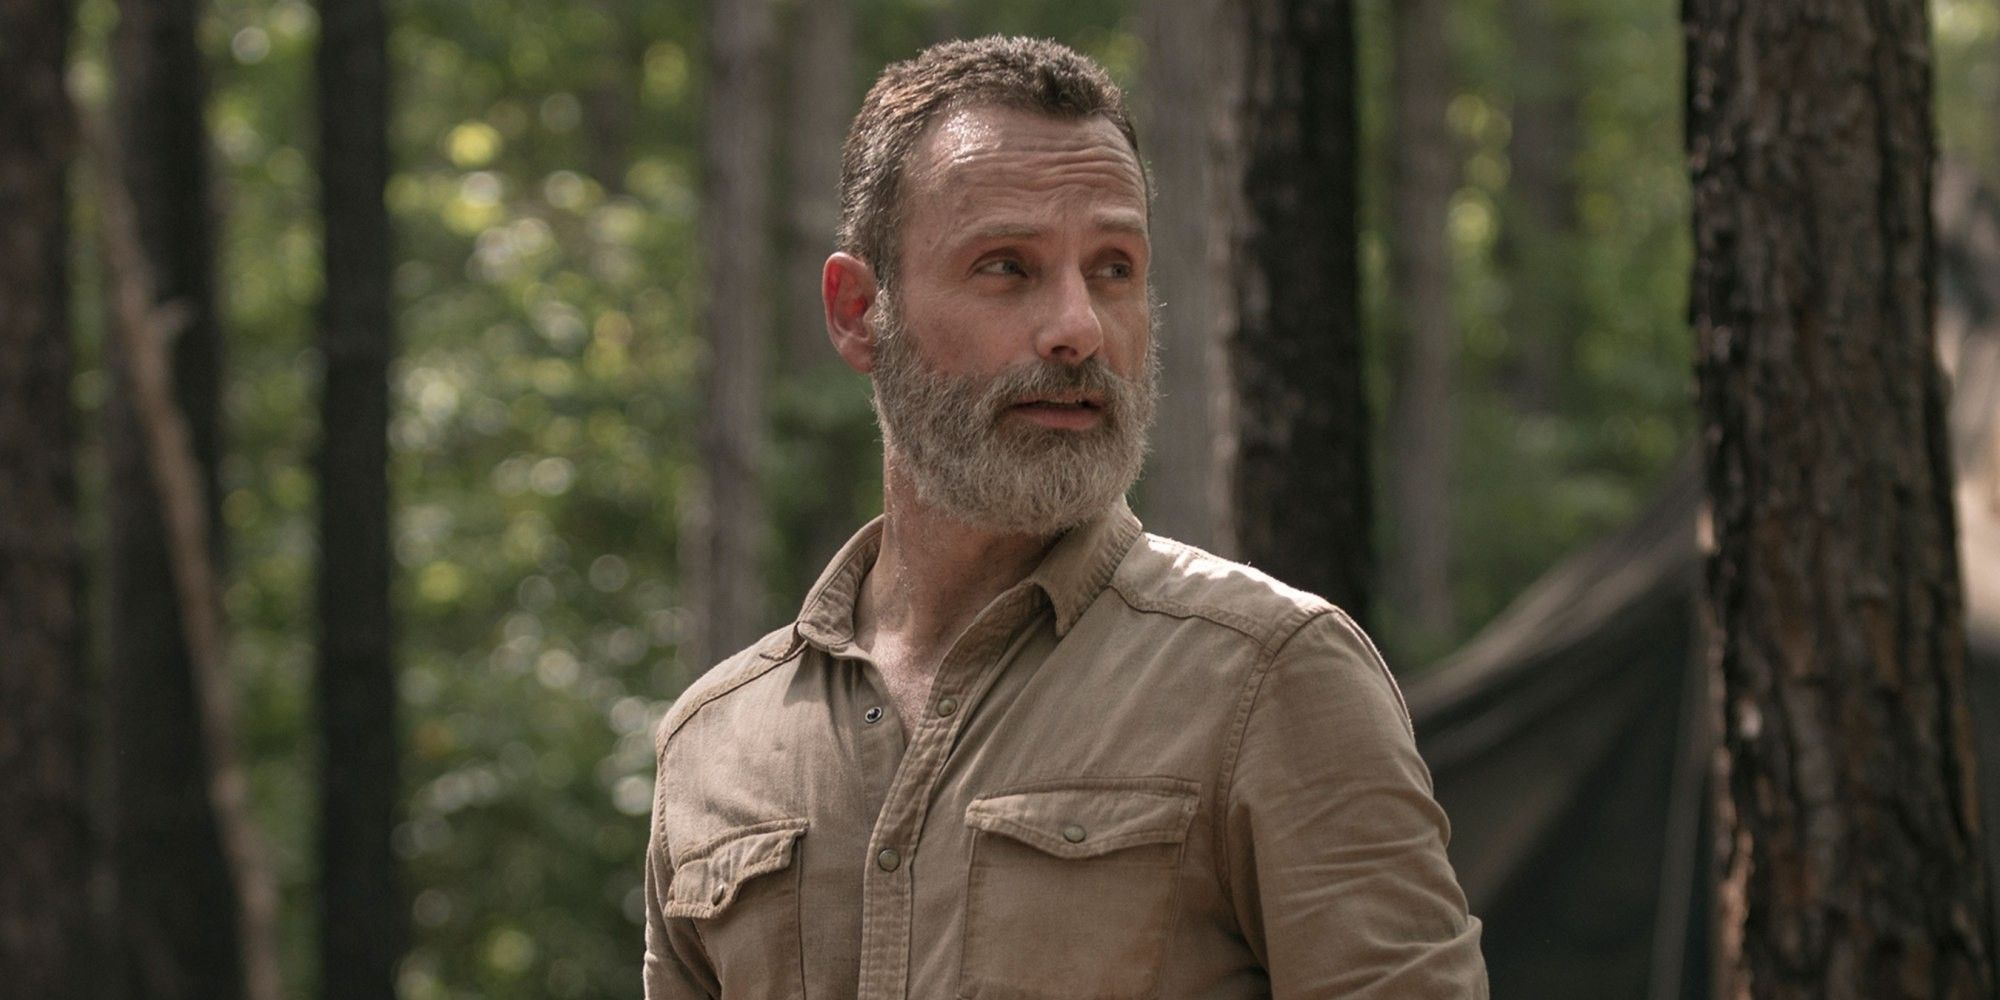 The Walking Dead Andrew Lincoln: Andrew Lincoln Says Goodbye To Walking Dead With Farewell